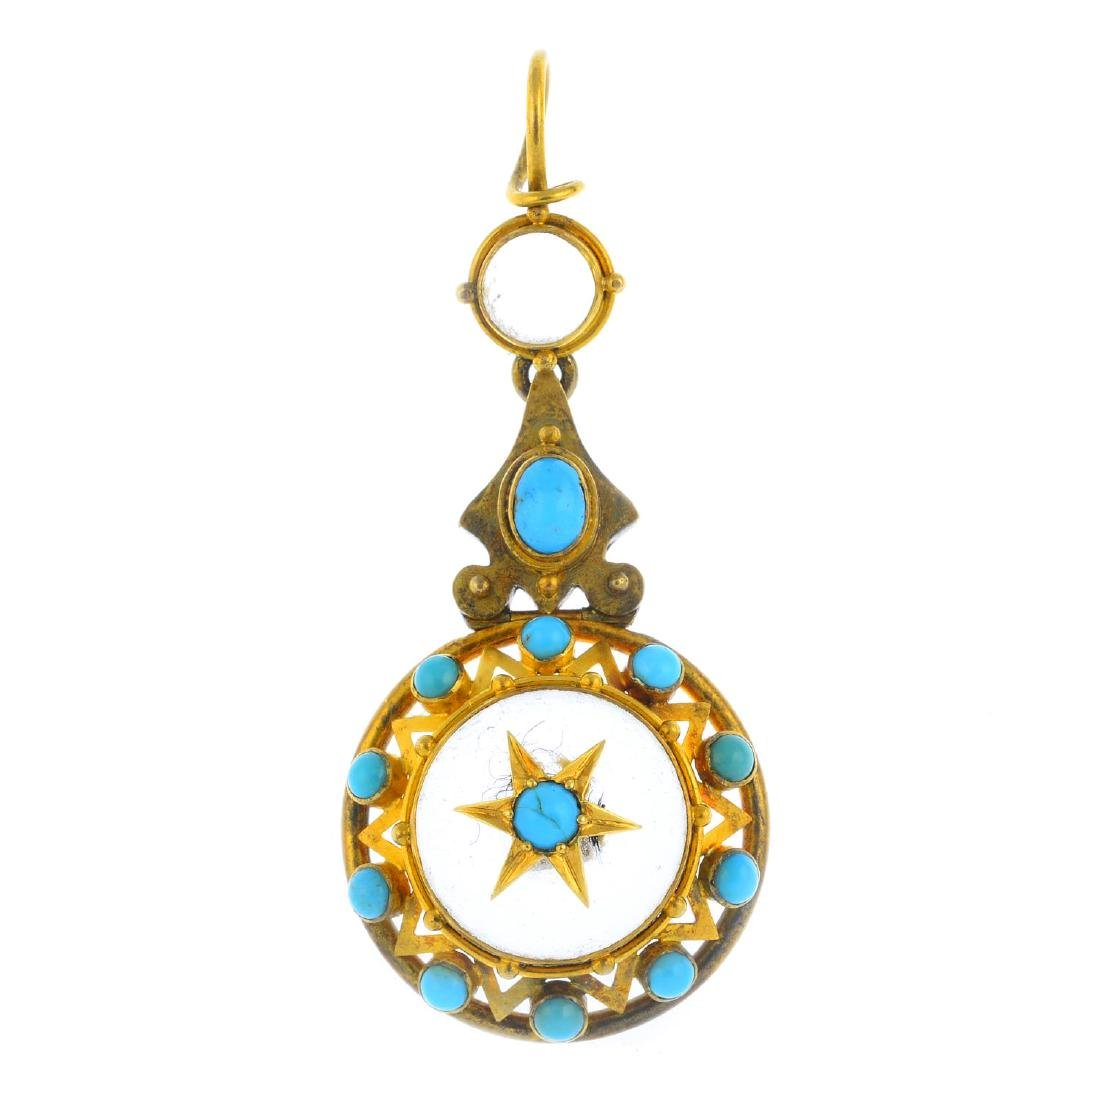 A late Victorian gold gem-set pendant. The circular